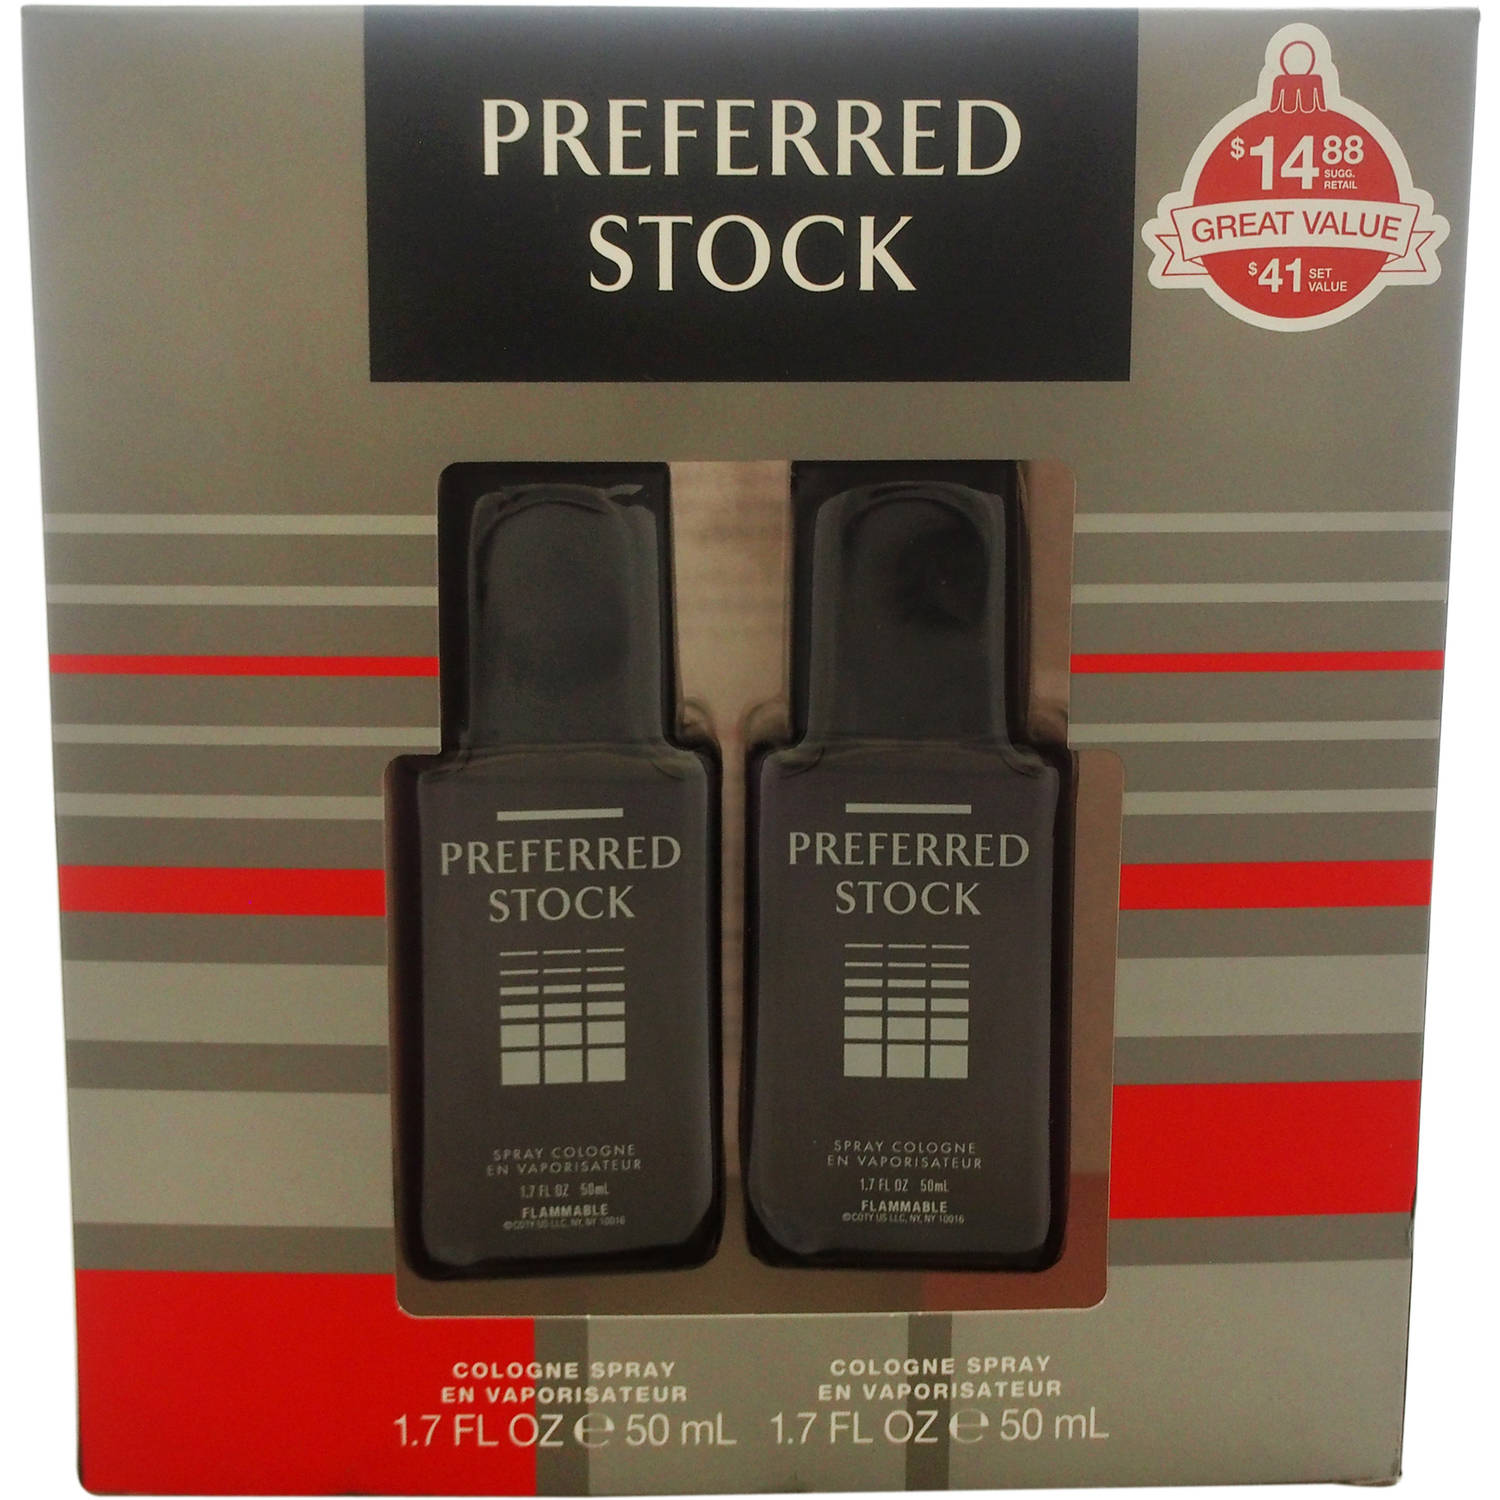 Coty Preferred Stock for Men Fragrance Gift Set, 2 pc